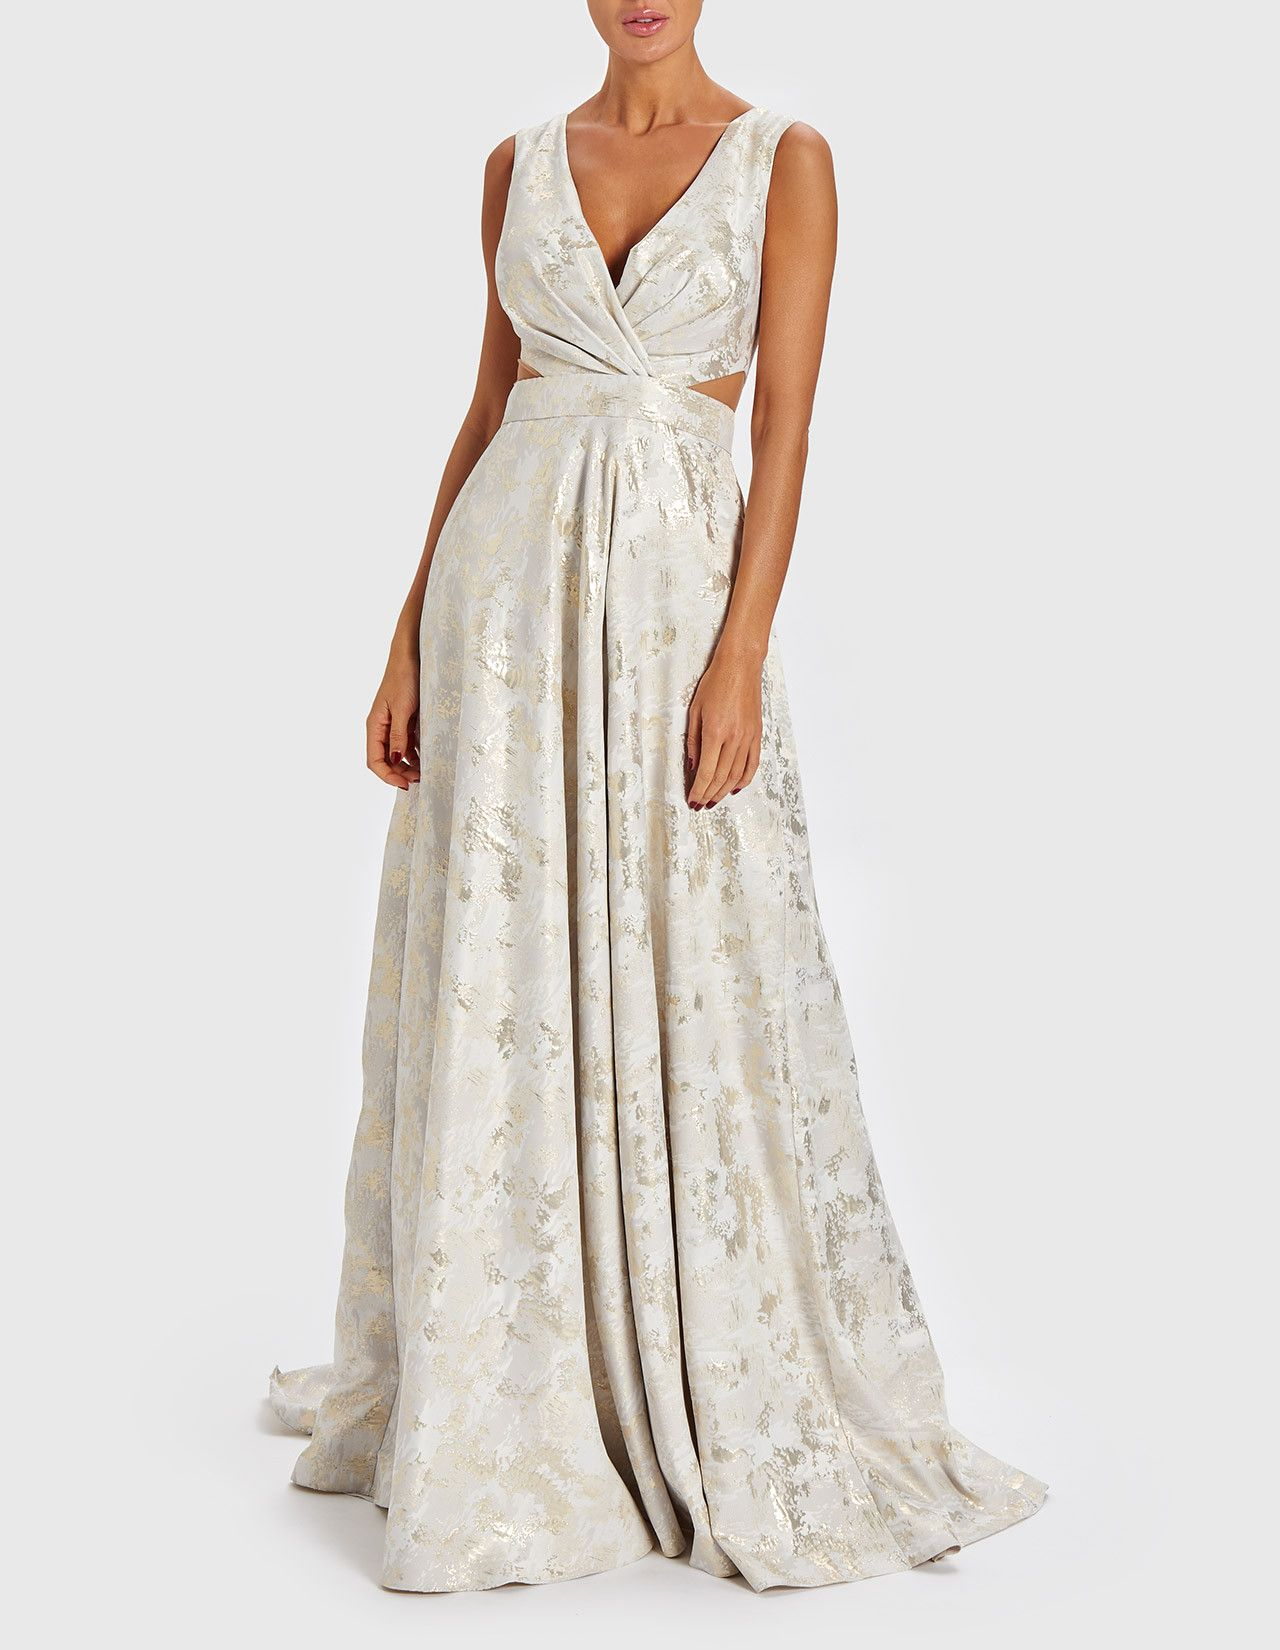 The mara ivory and gold floorlength gown will make you look and